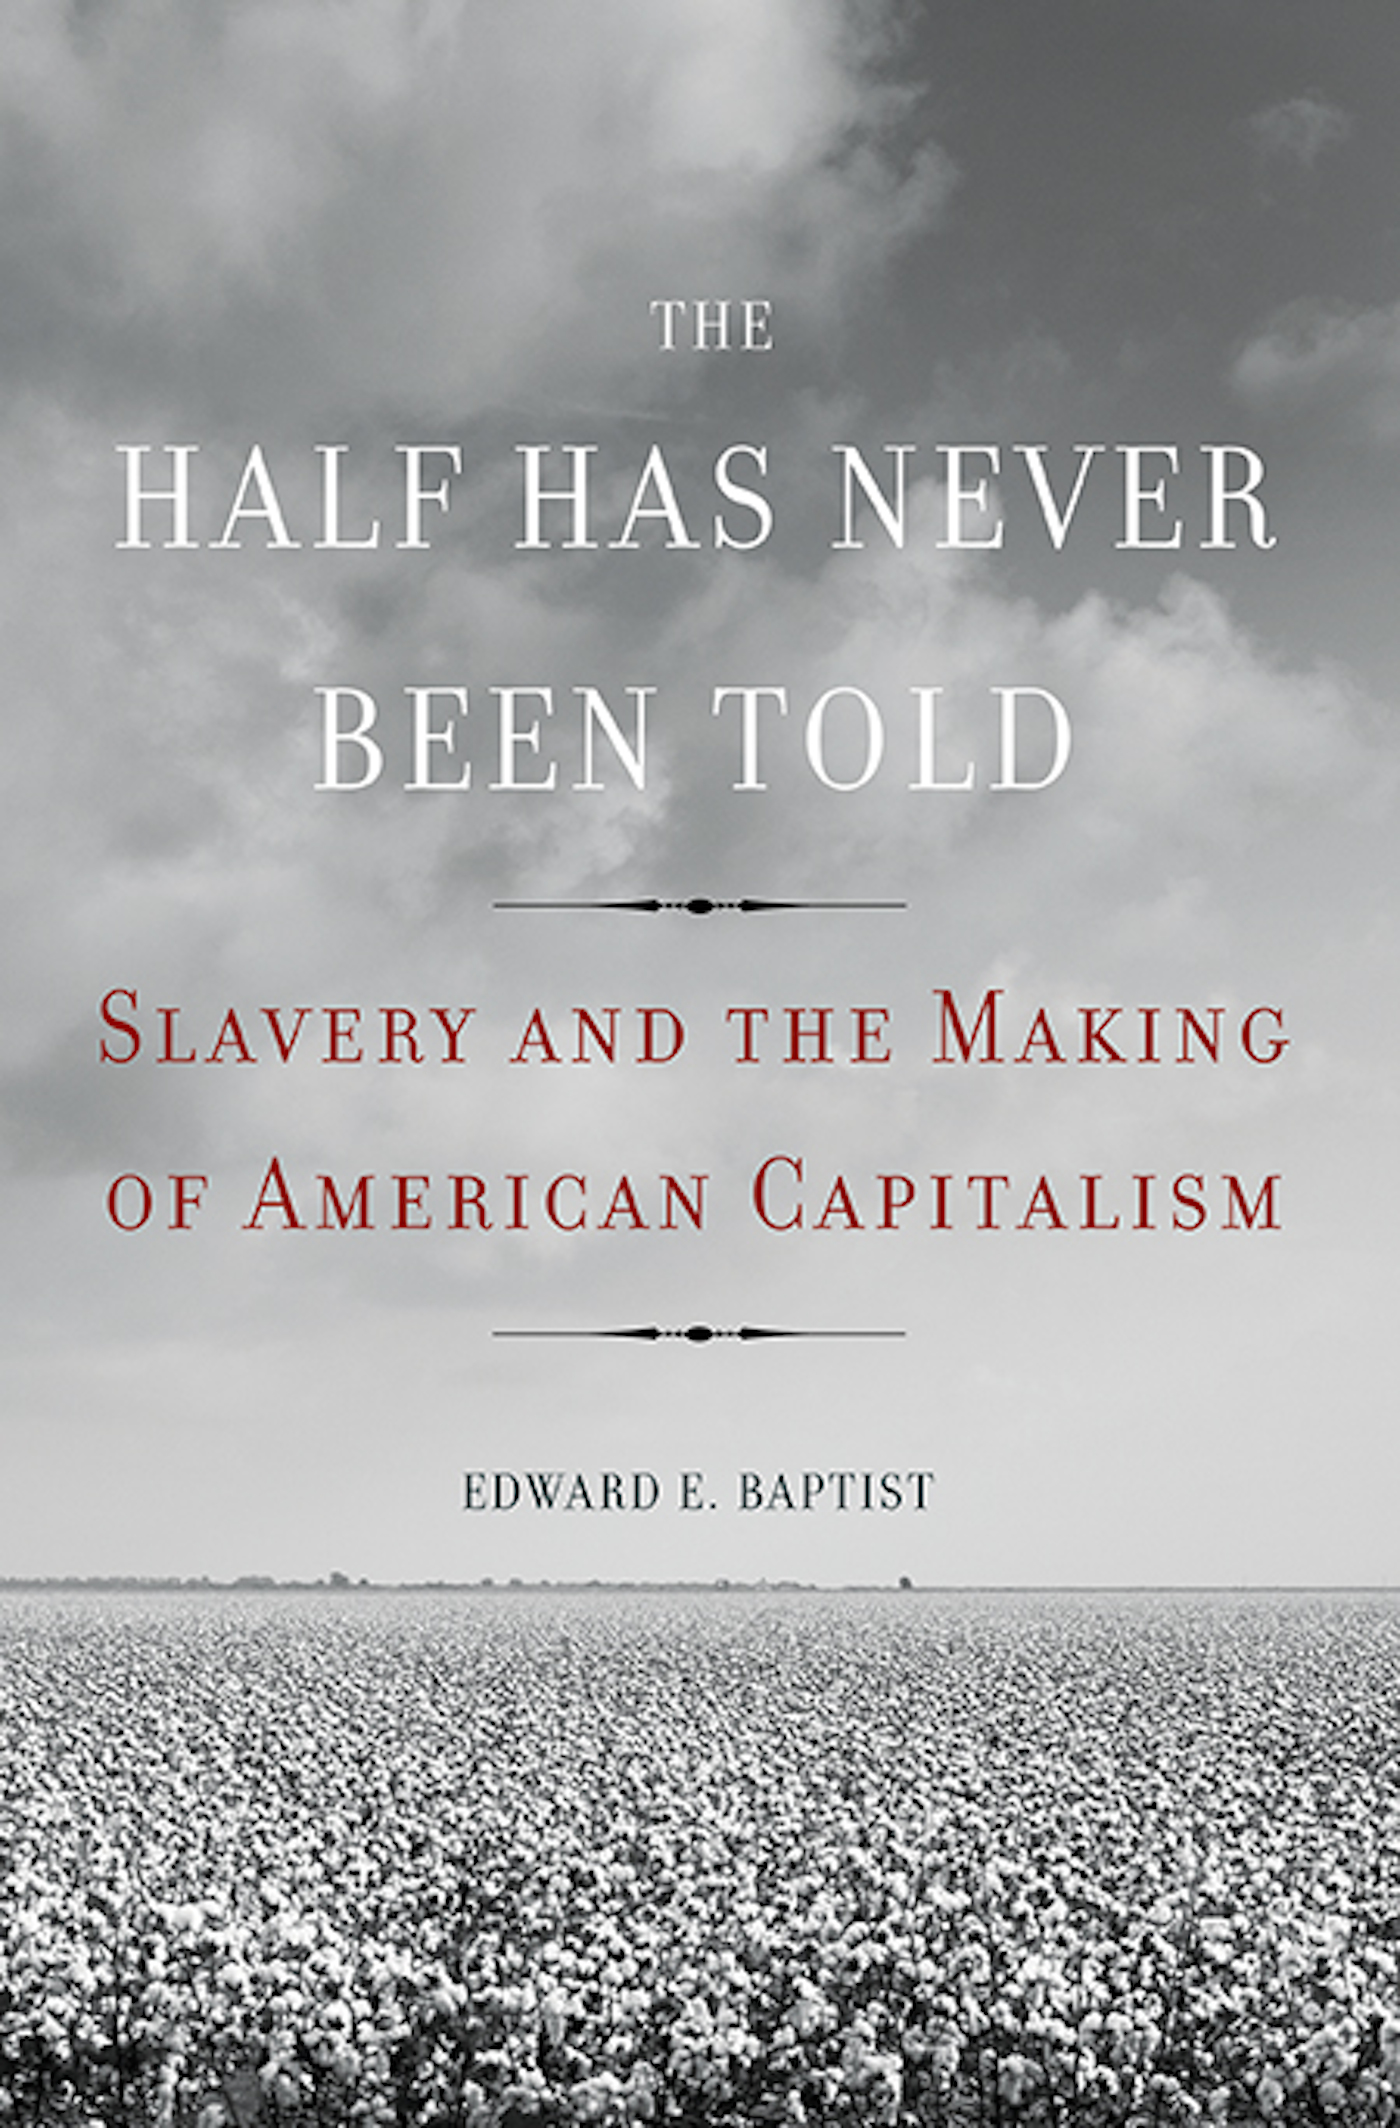 The Half Has Never Been Told Slavery and the Making of American Capitalism